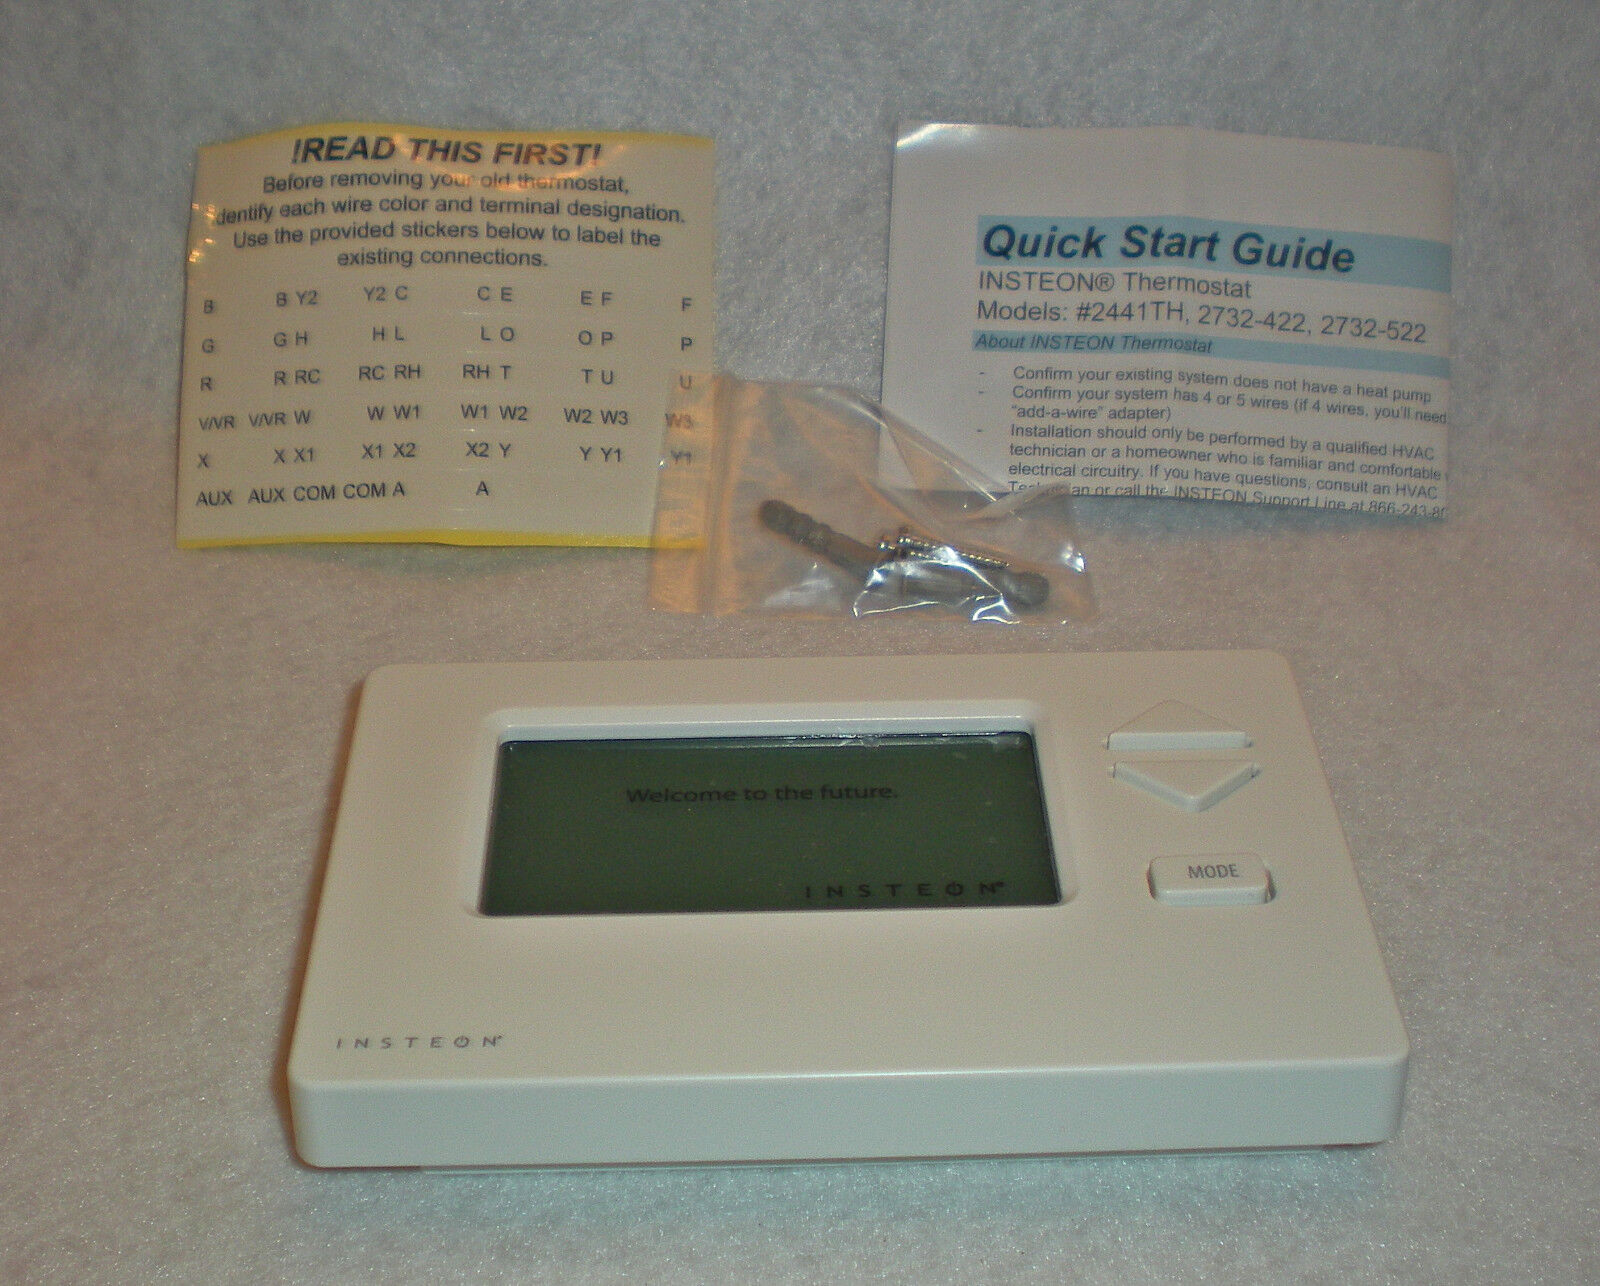 Tech Wiring Insteon Thermostat Guide And Troubleshooting Of With Humidity Sensor 2441th Ebay Rh Com 2732 Venstar